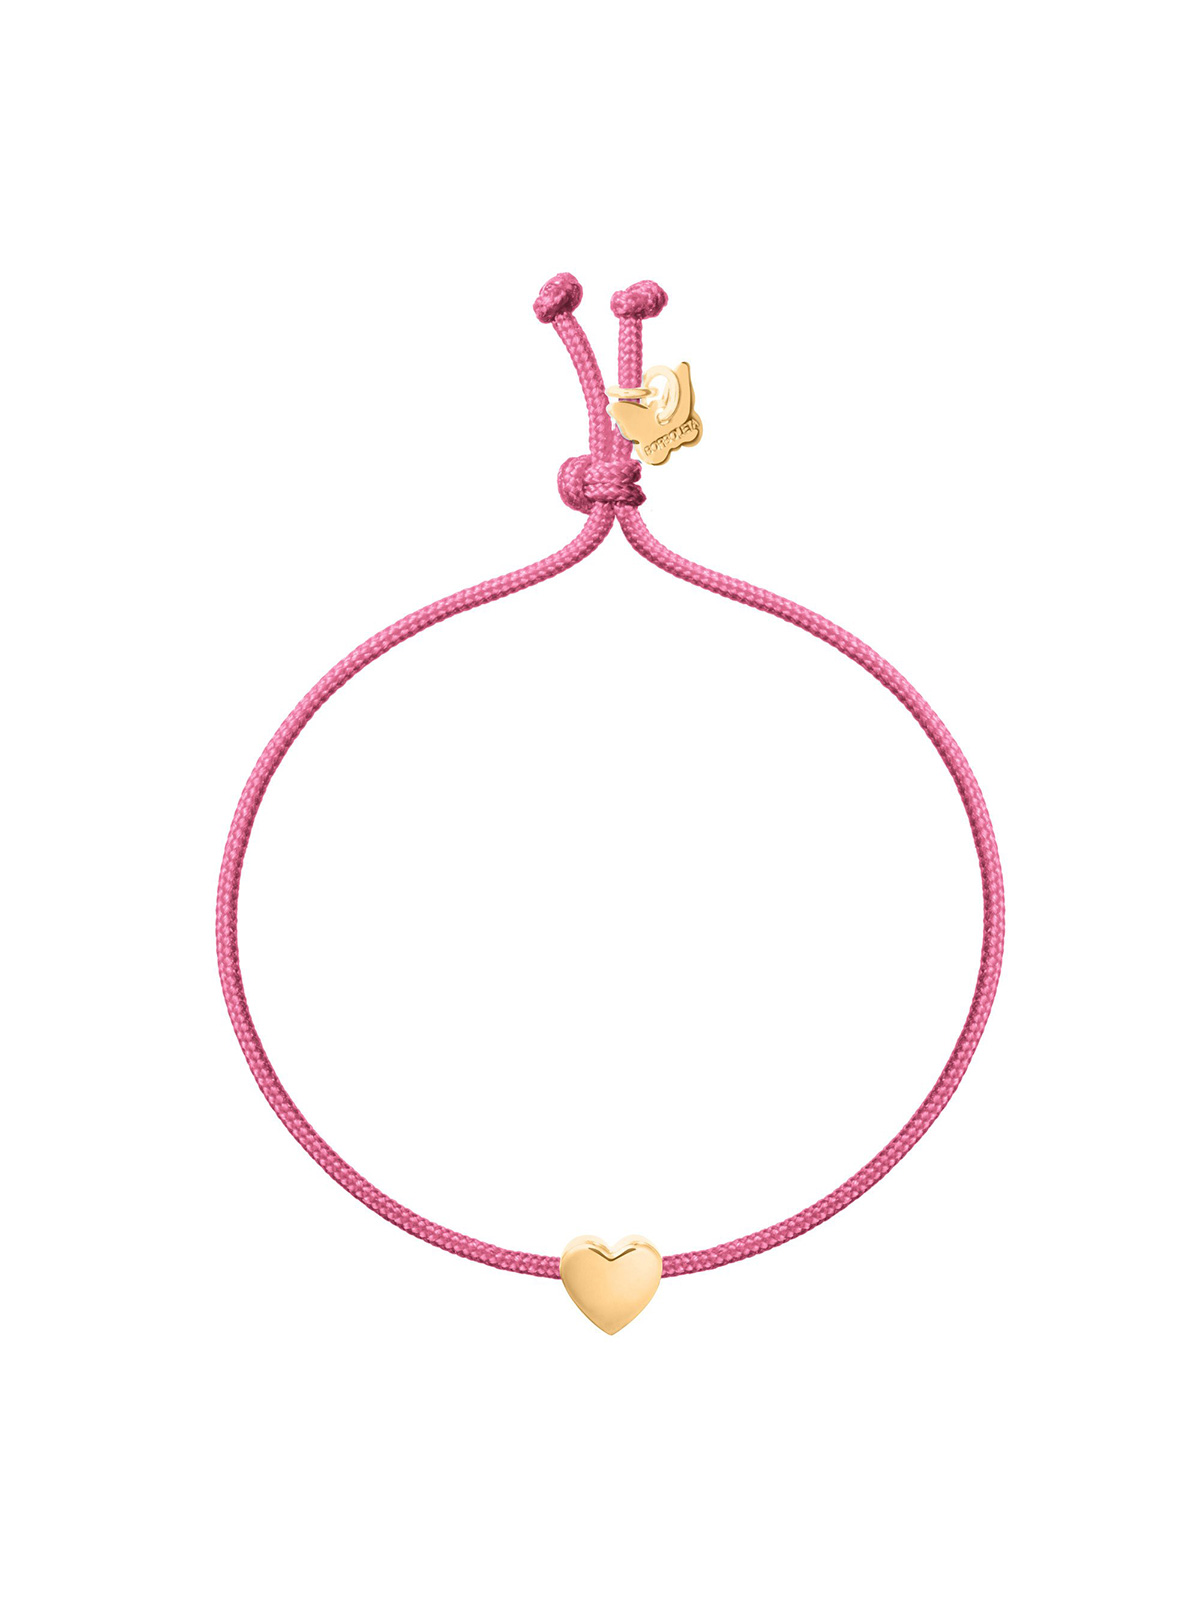 BUBBLE HEART BRACELET